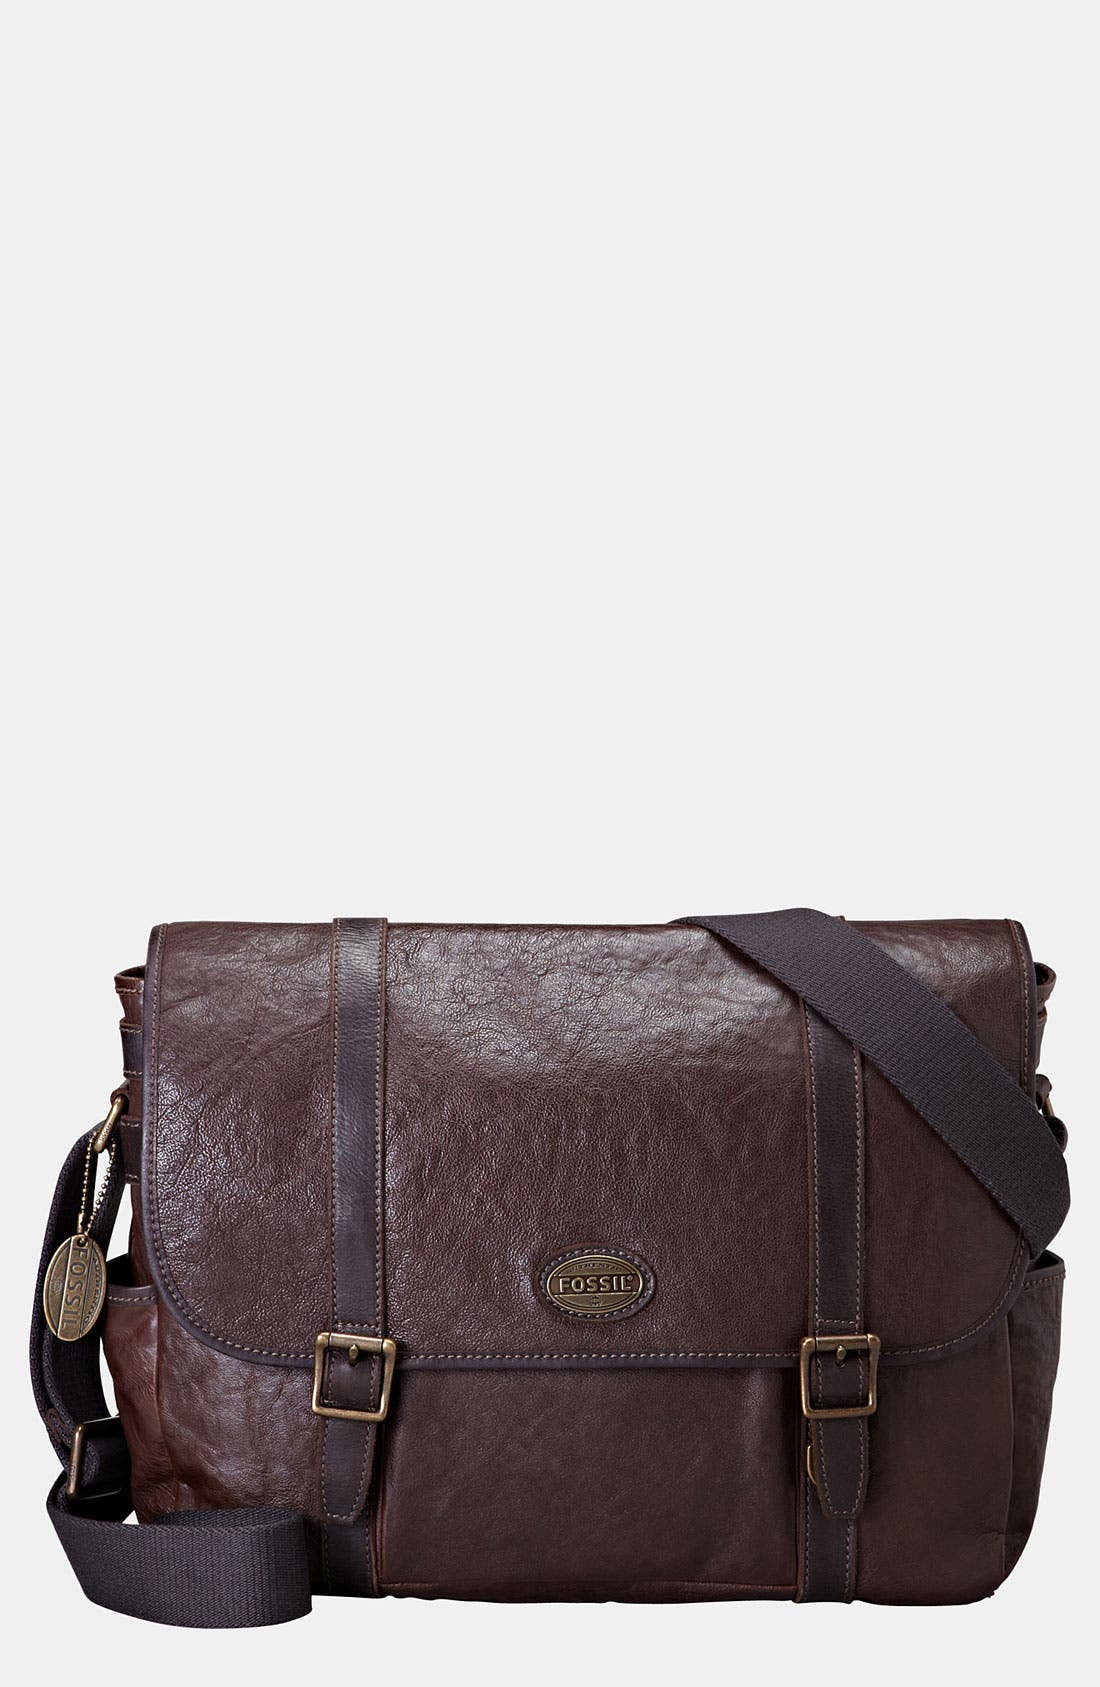 Alternate Image 1 Selected - Fossil 'Estate' Messenger Bag